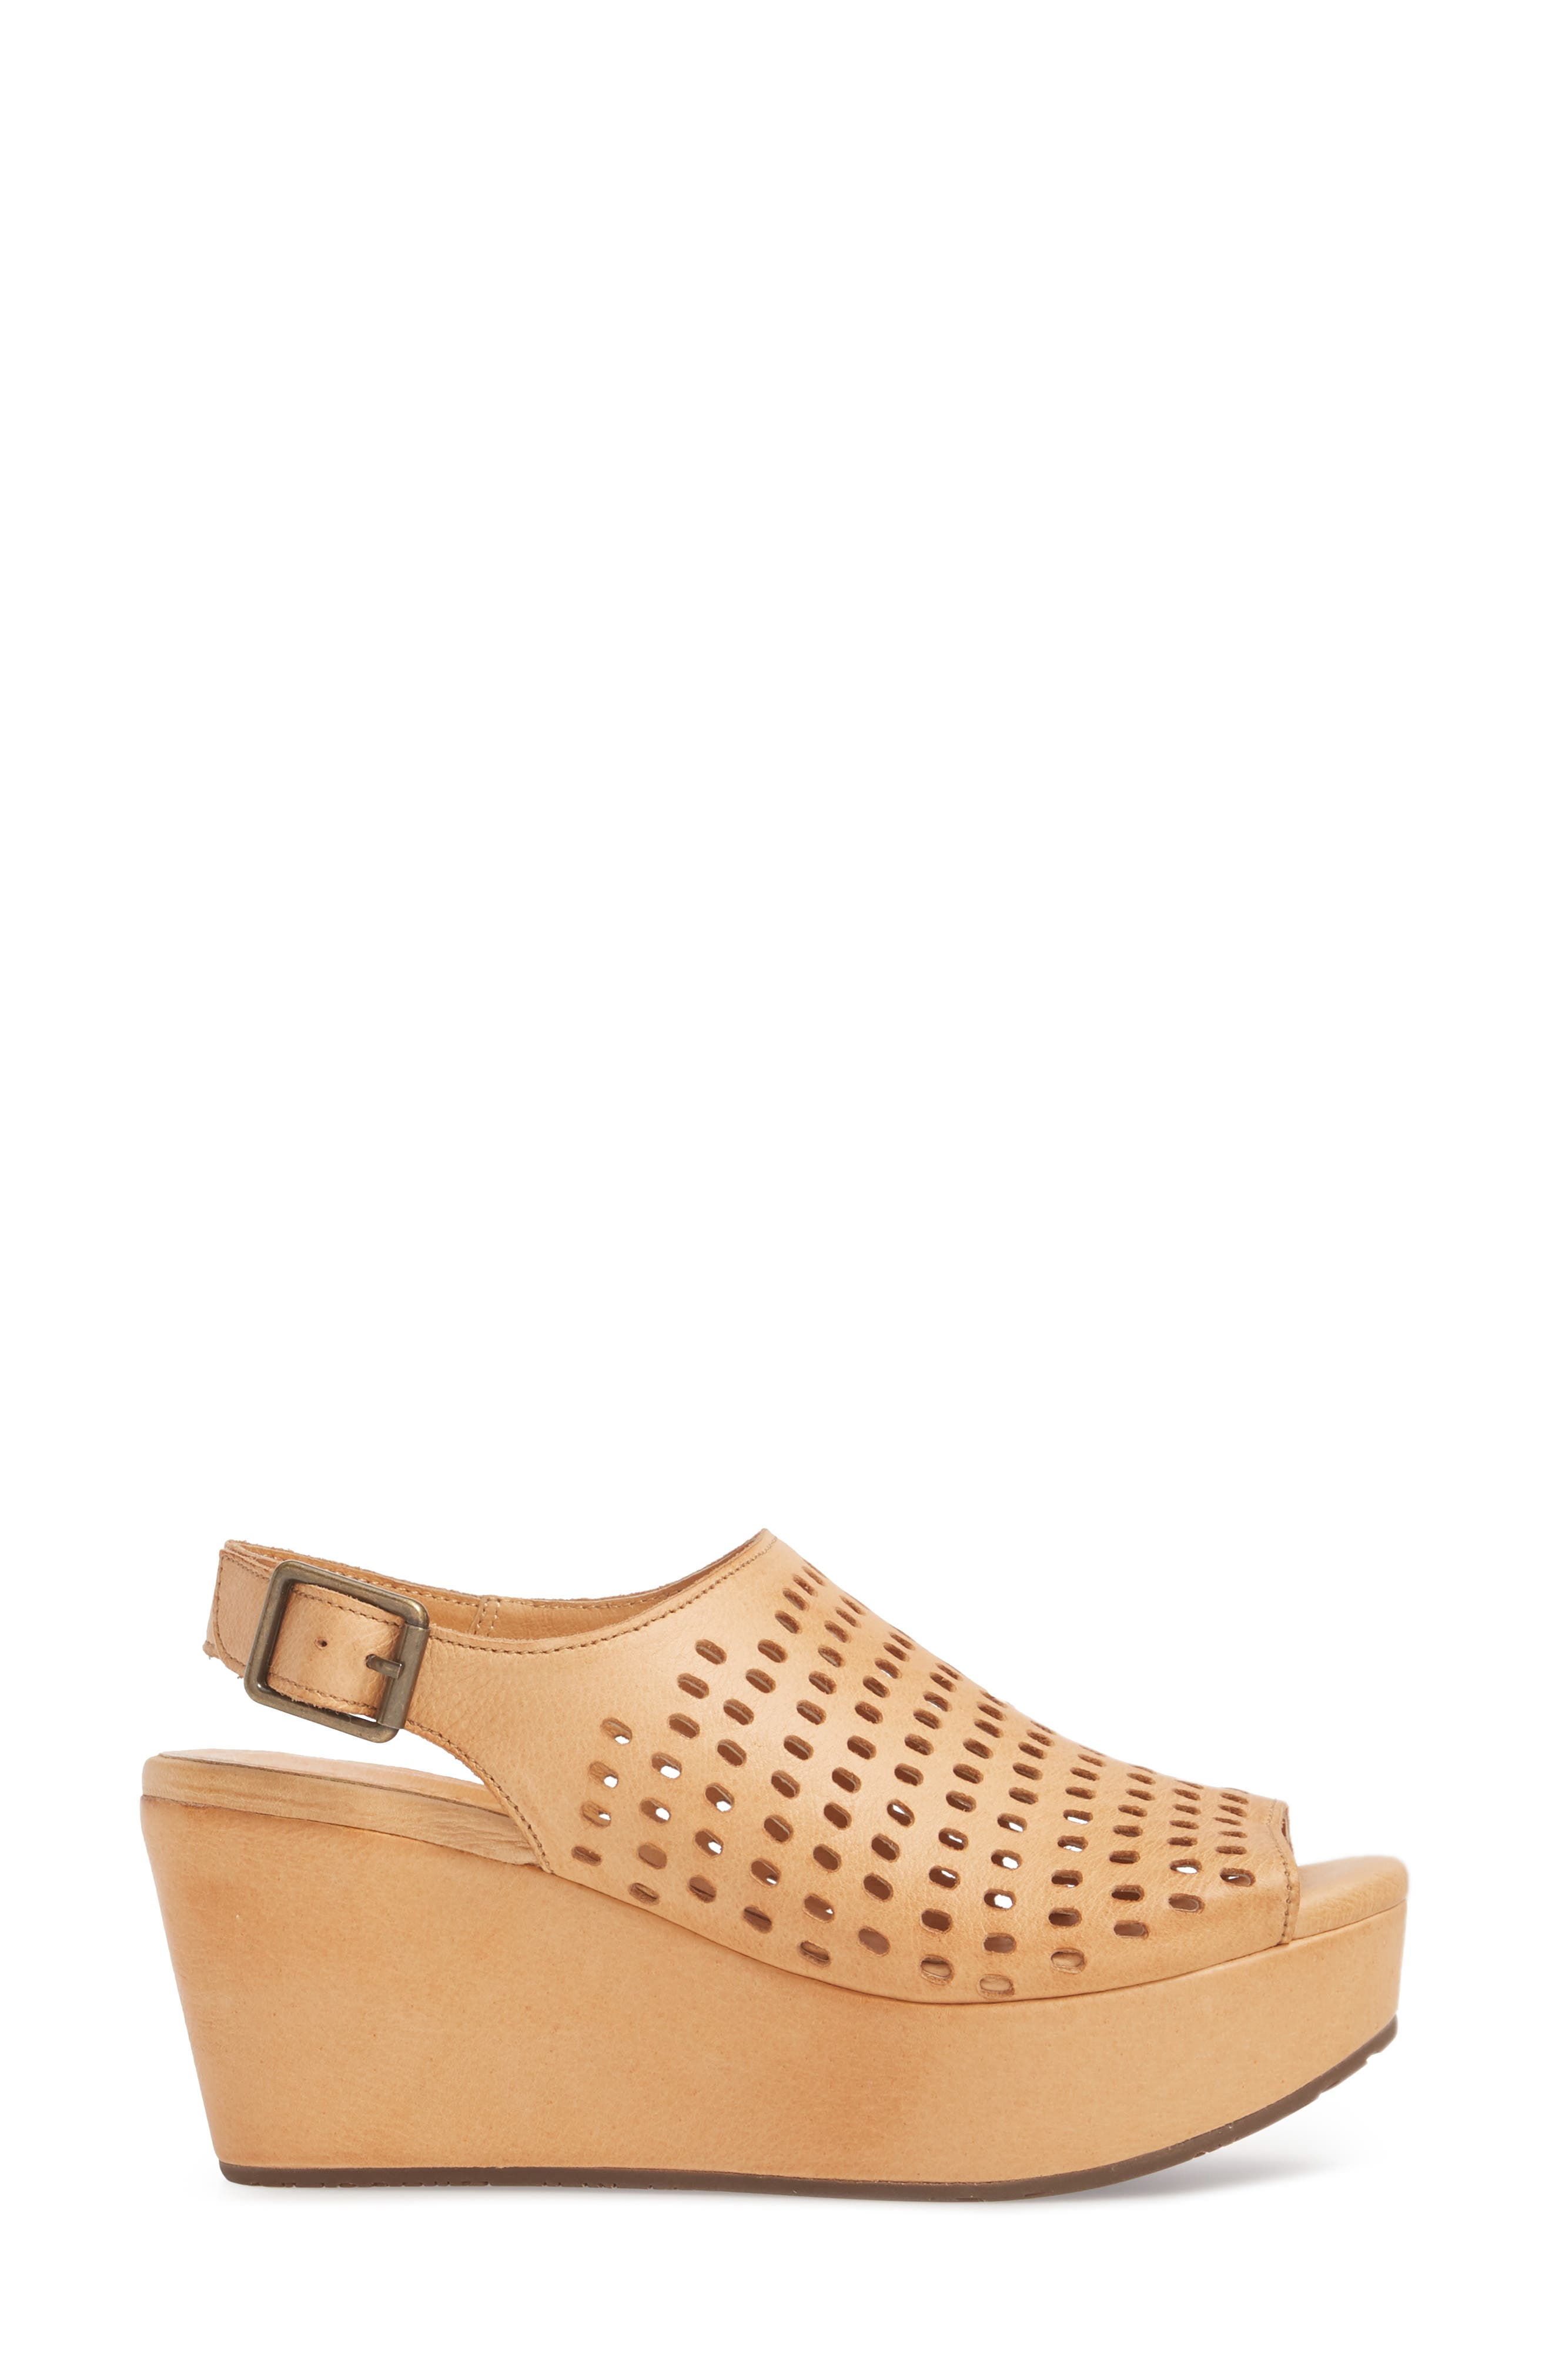 Wally Platform Wedge Sandal,                             Alternate thumbnail 3, color,                             Tan Leather